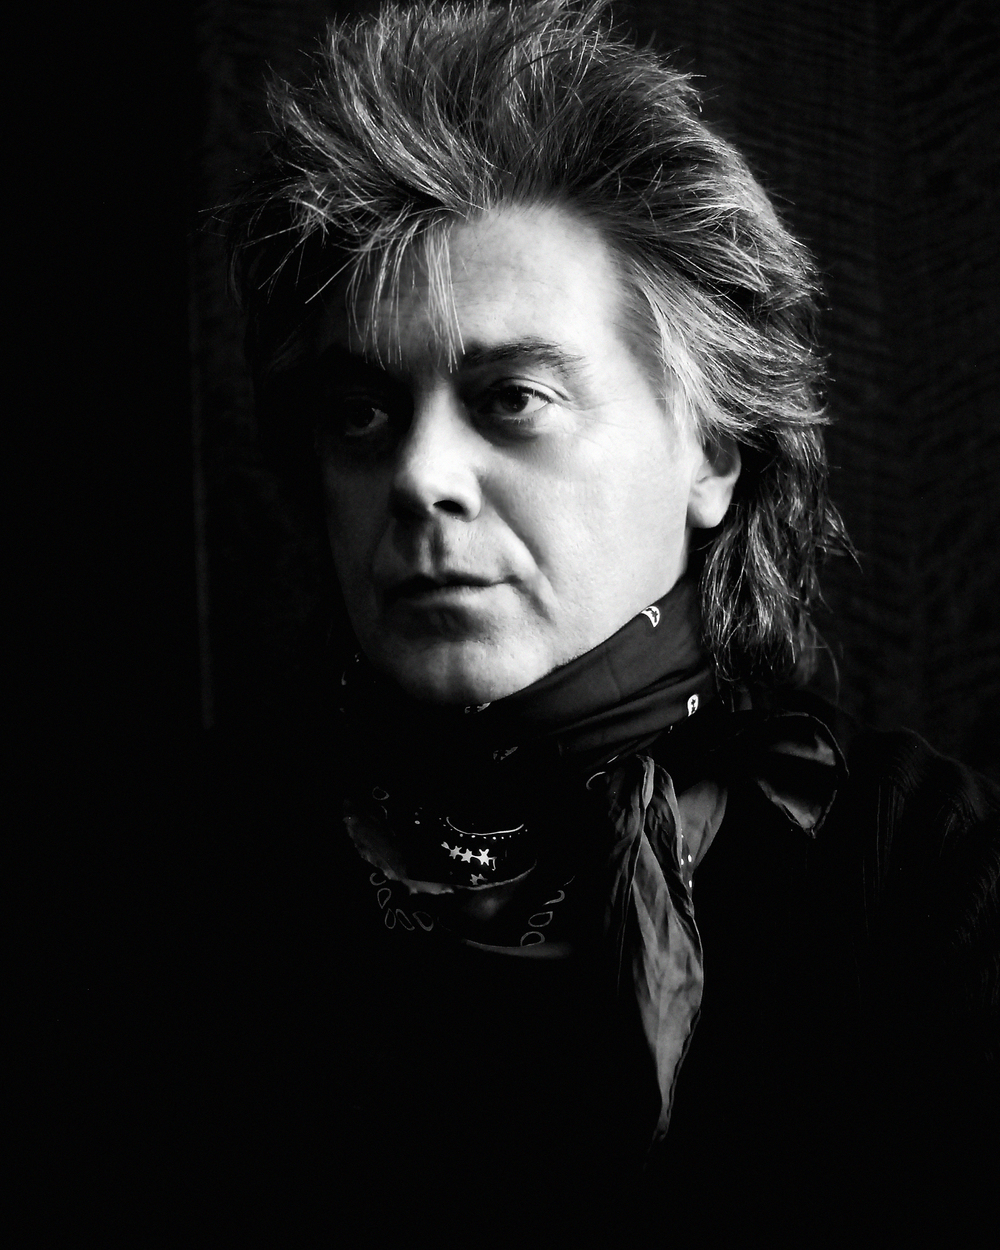 Marty_Stuart_Head_shot_Photography_by_Anthony_Scarlati.jpg